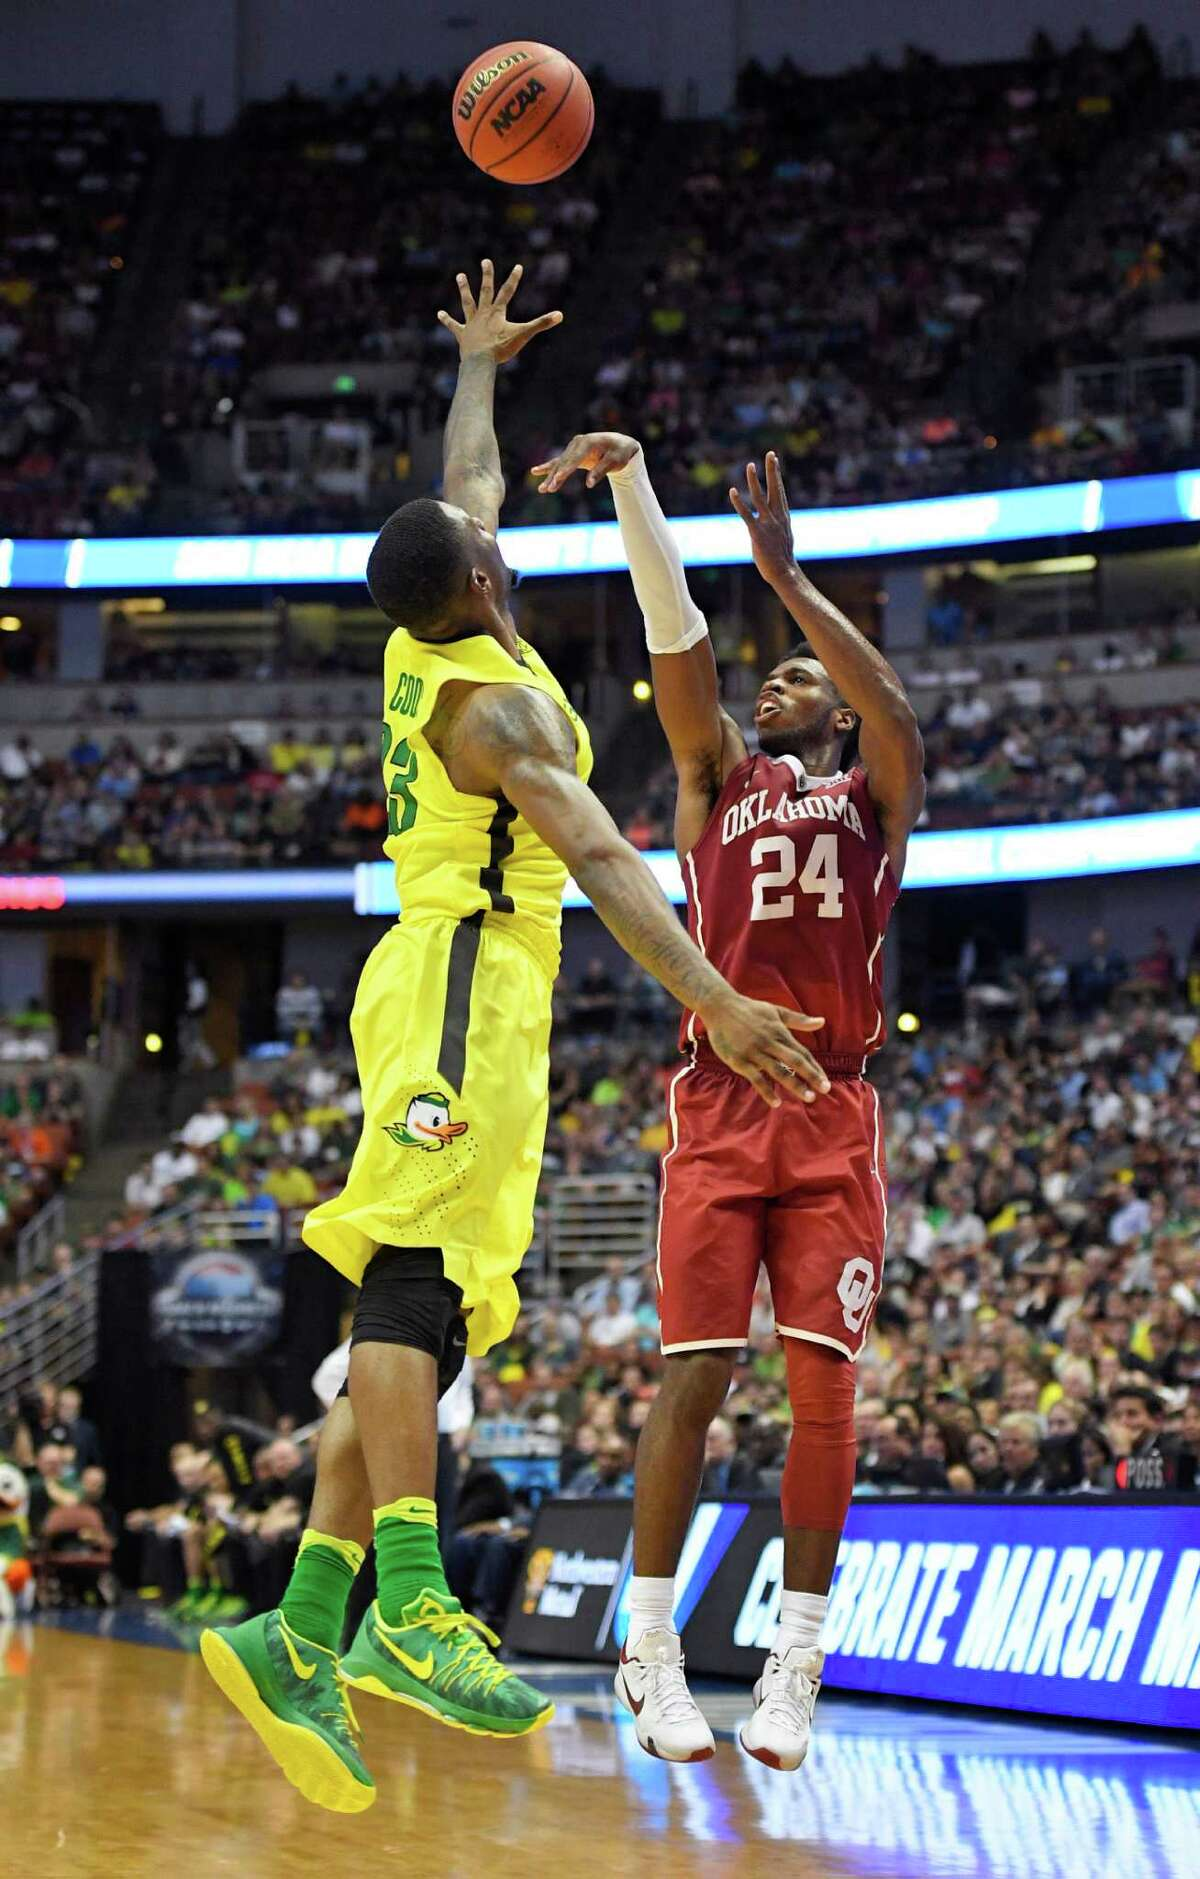 Oklahoma guard Buddy Hield scores over Oregon forward Elgin Cook during the second half of an NCAA college basketball game in the regional finals of the NCAA Tournament, Saturday, March 26, 2016, in Anaheim, Calif.